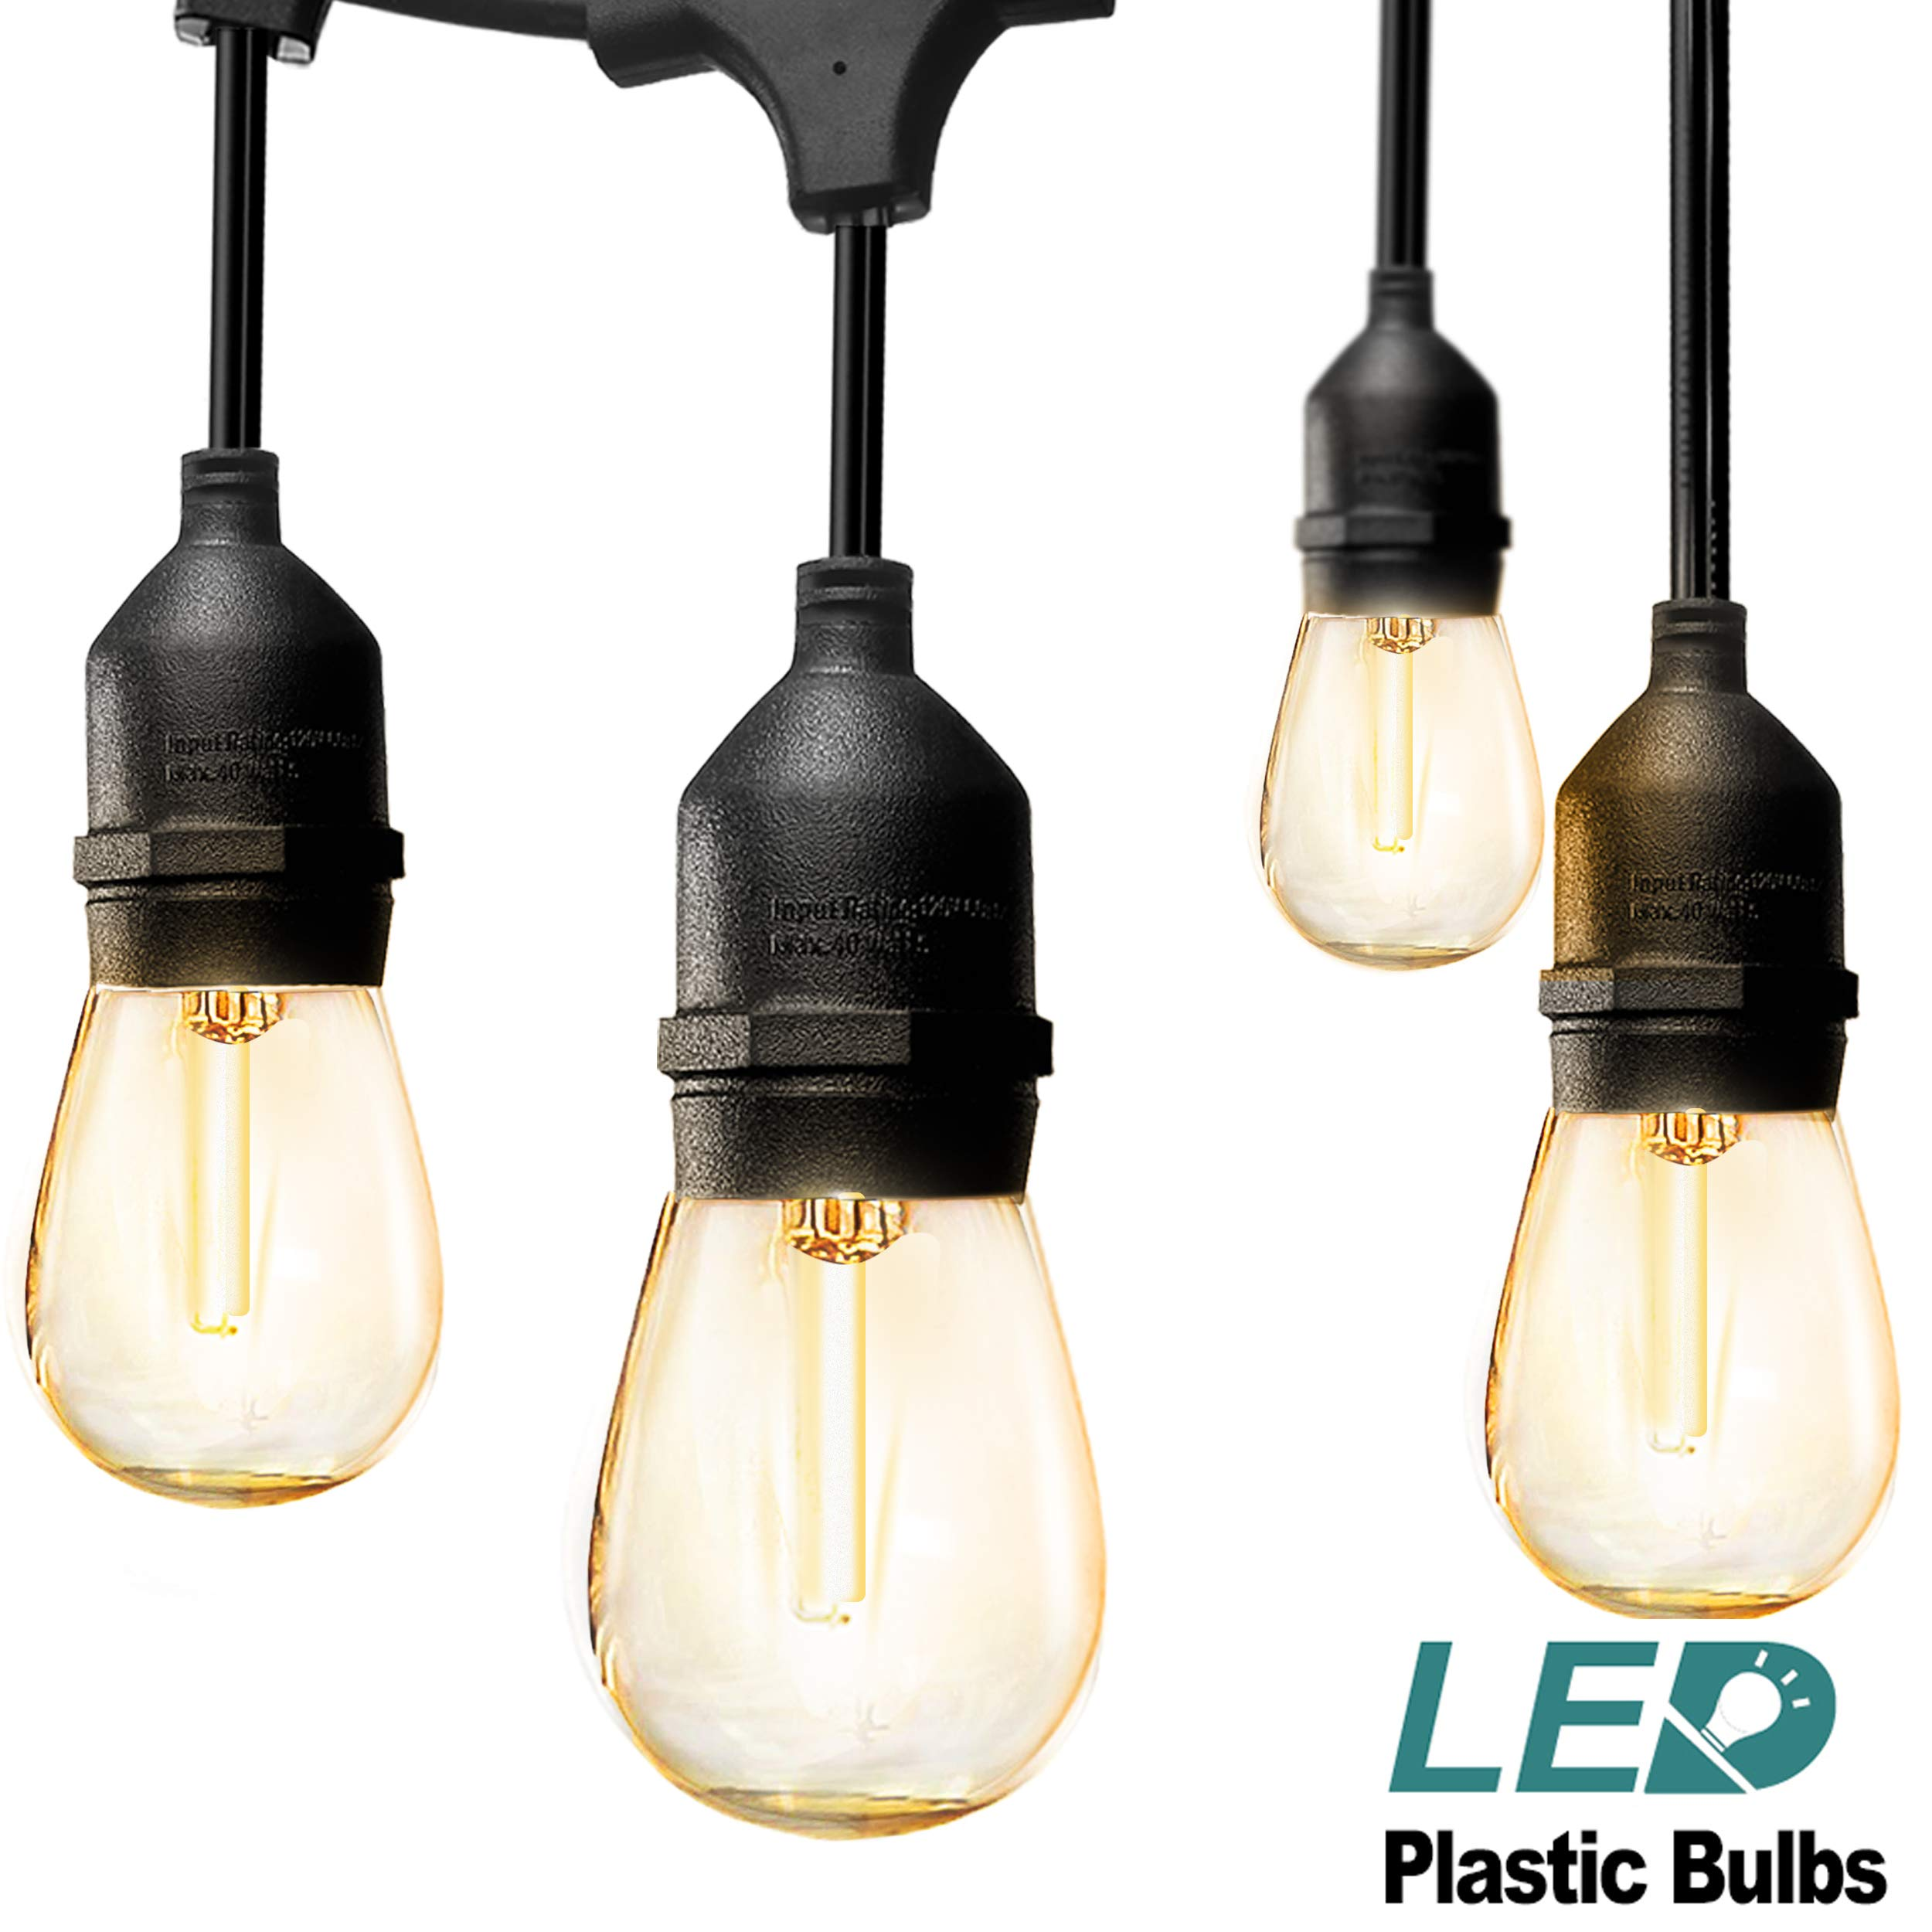 addlon LED Outdoor String Lights 48FT : with Dimmable Edison Vintage Plastic Bulbs and Commercial Great Weatherproof Strand - UL Listed Heavy-Duty Decorative LED Café Patio Light, Porch Market Lights